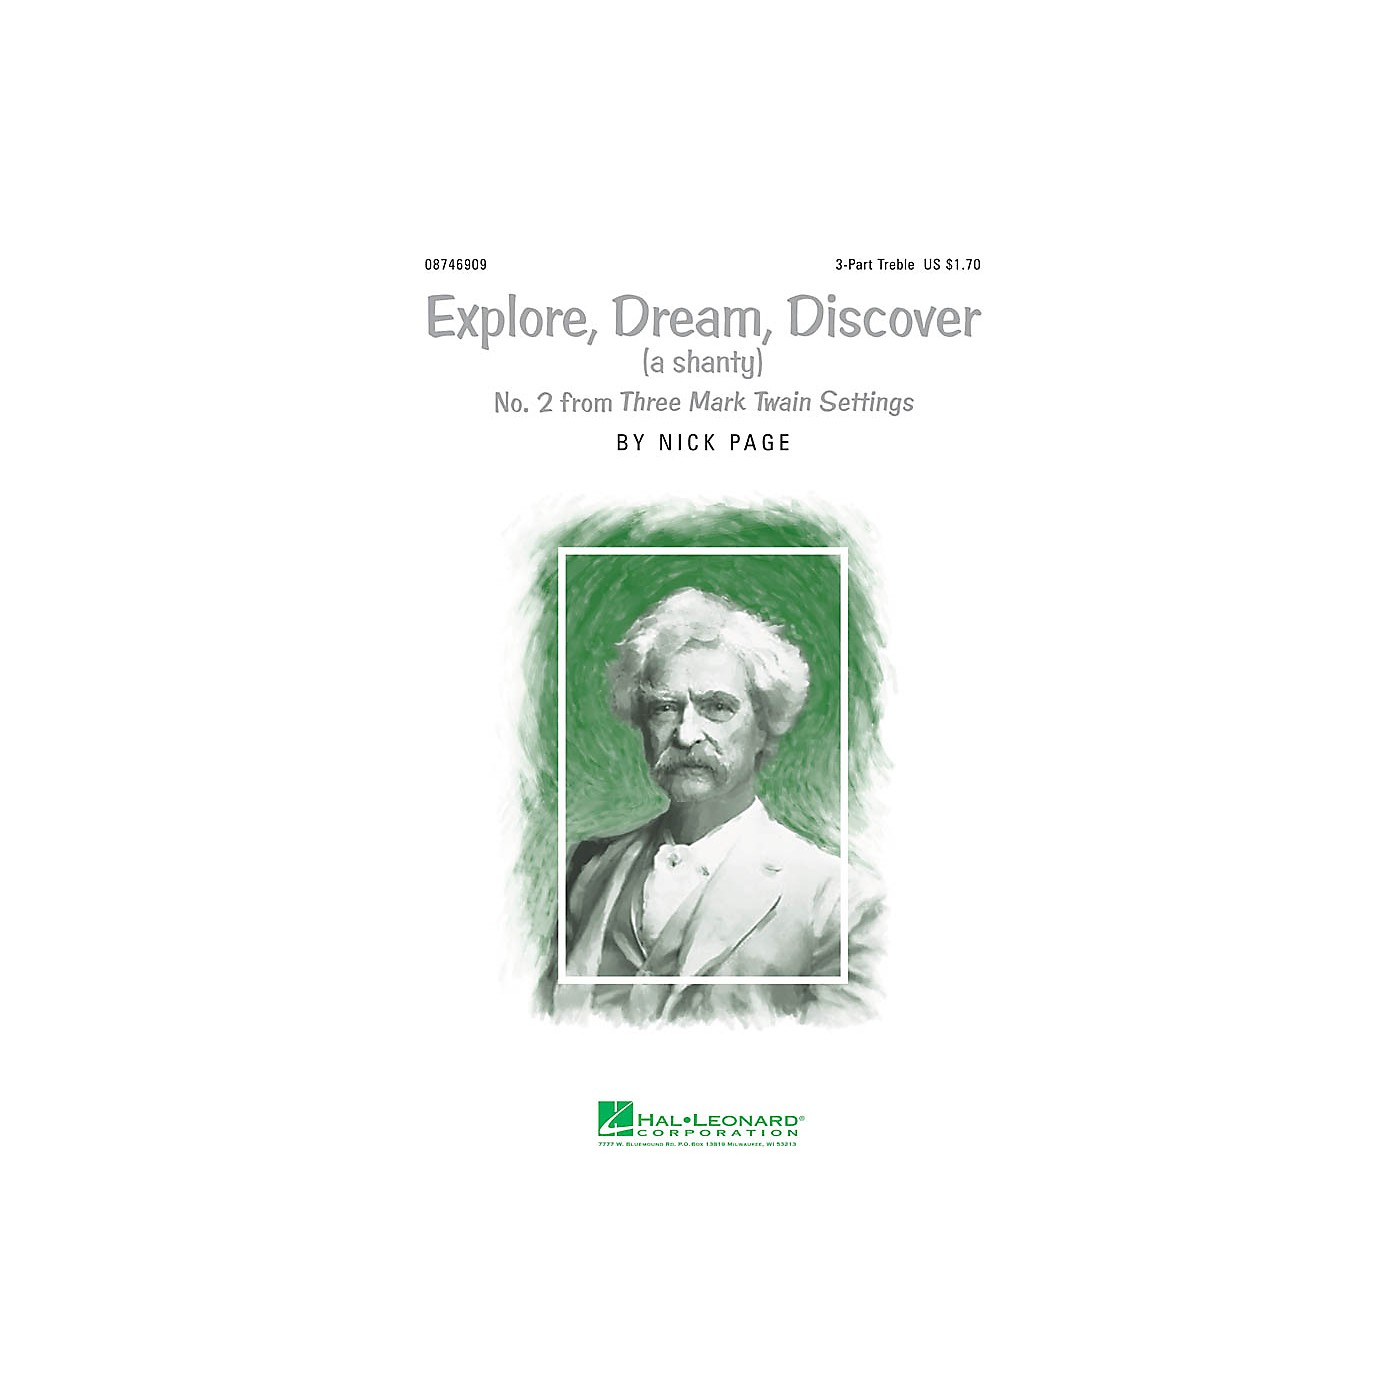 Hal Leonard Explore, Dream, Discover (No. 2 from Three Mark Twain Settings) 3 Part Treble composed by Nick Page thumbnail